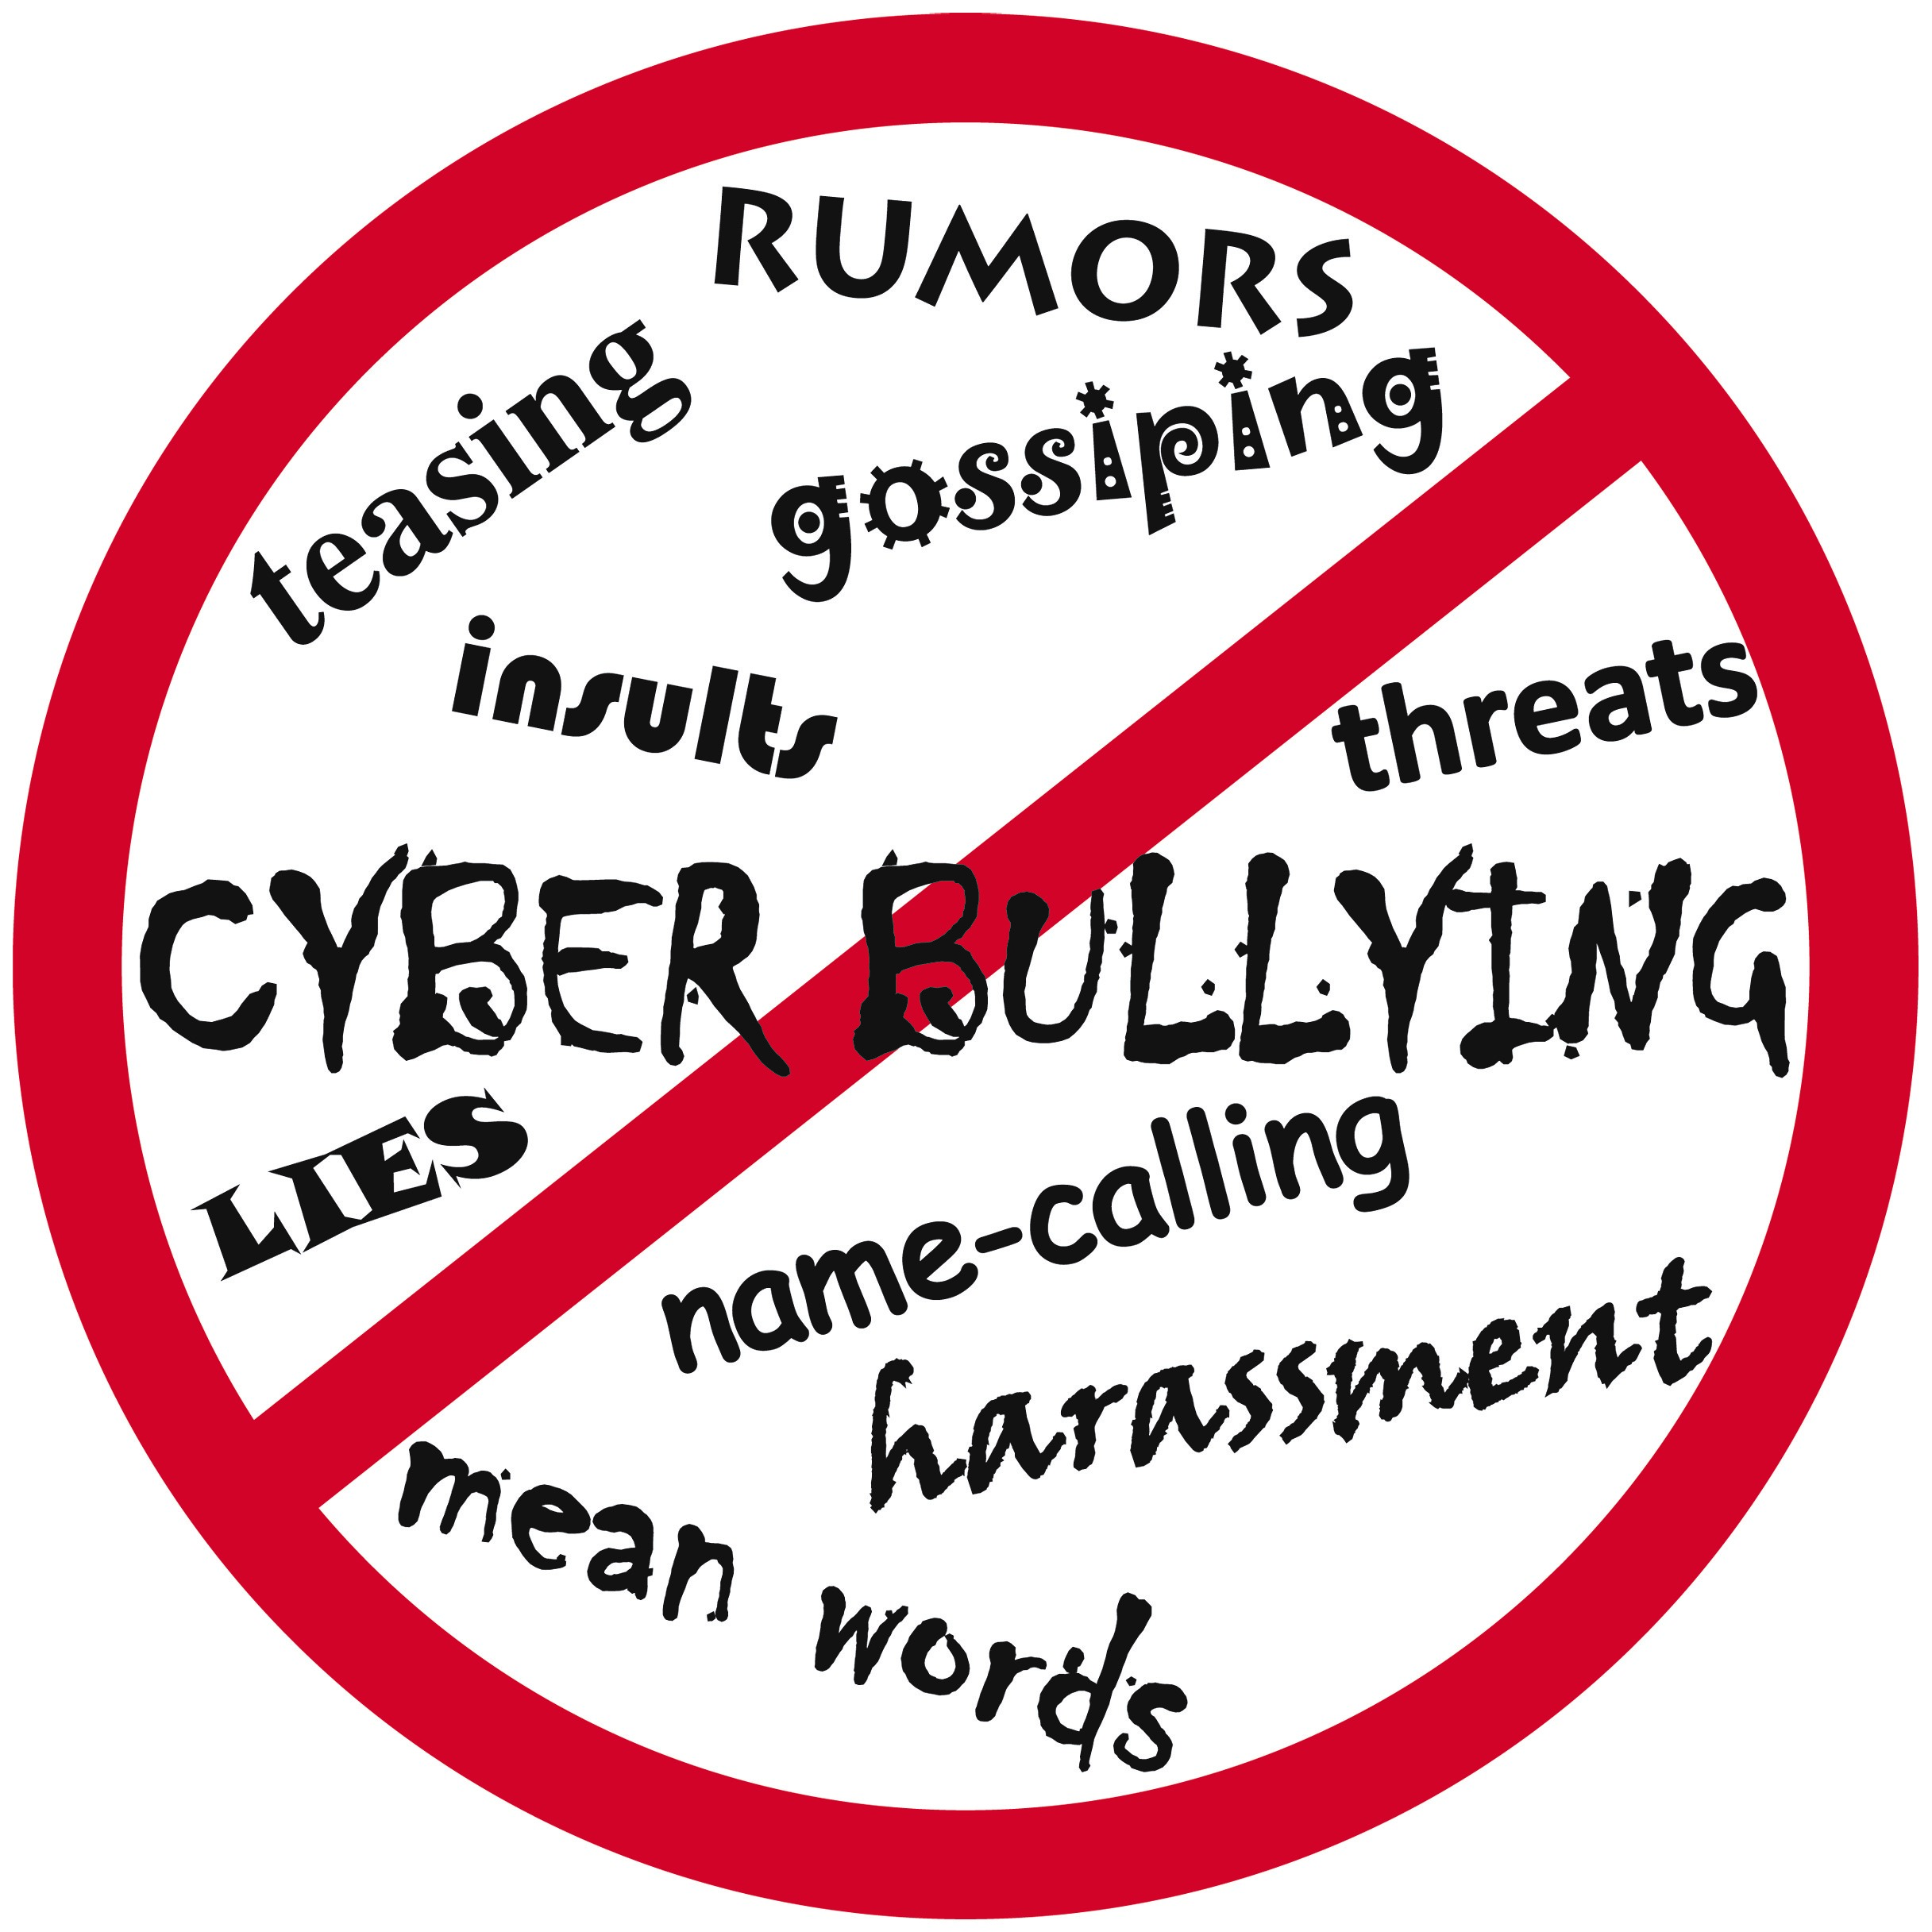 What is cyber bullying and what can we do about it?